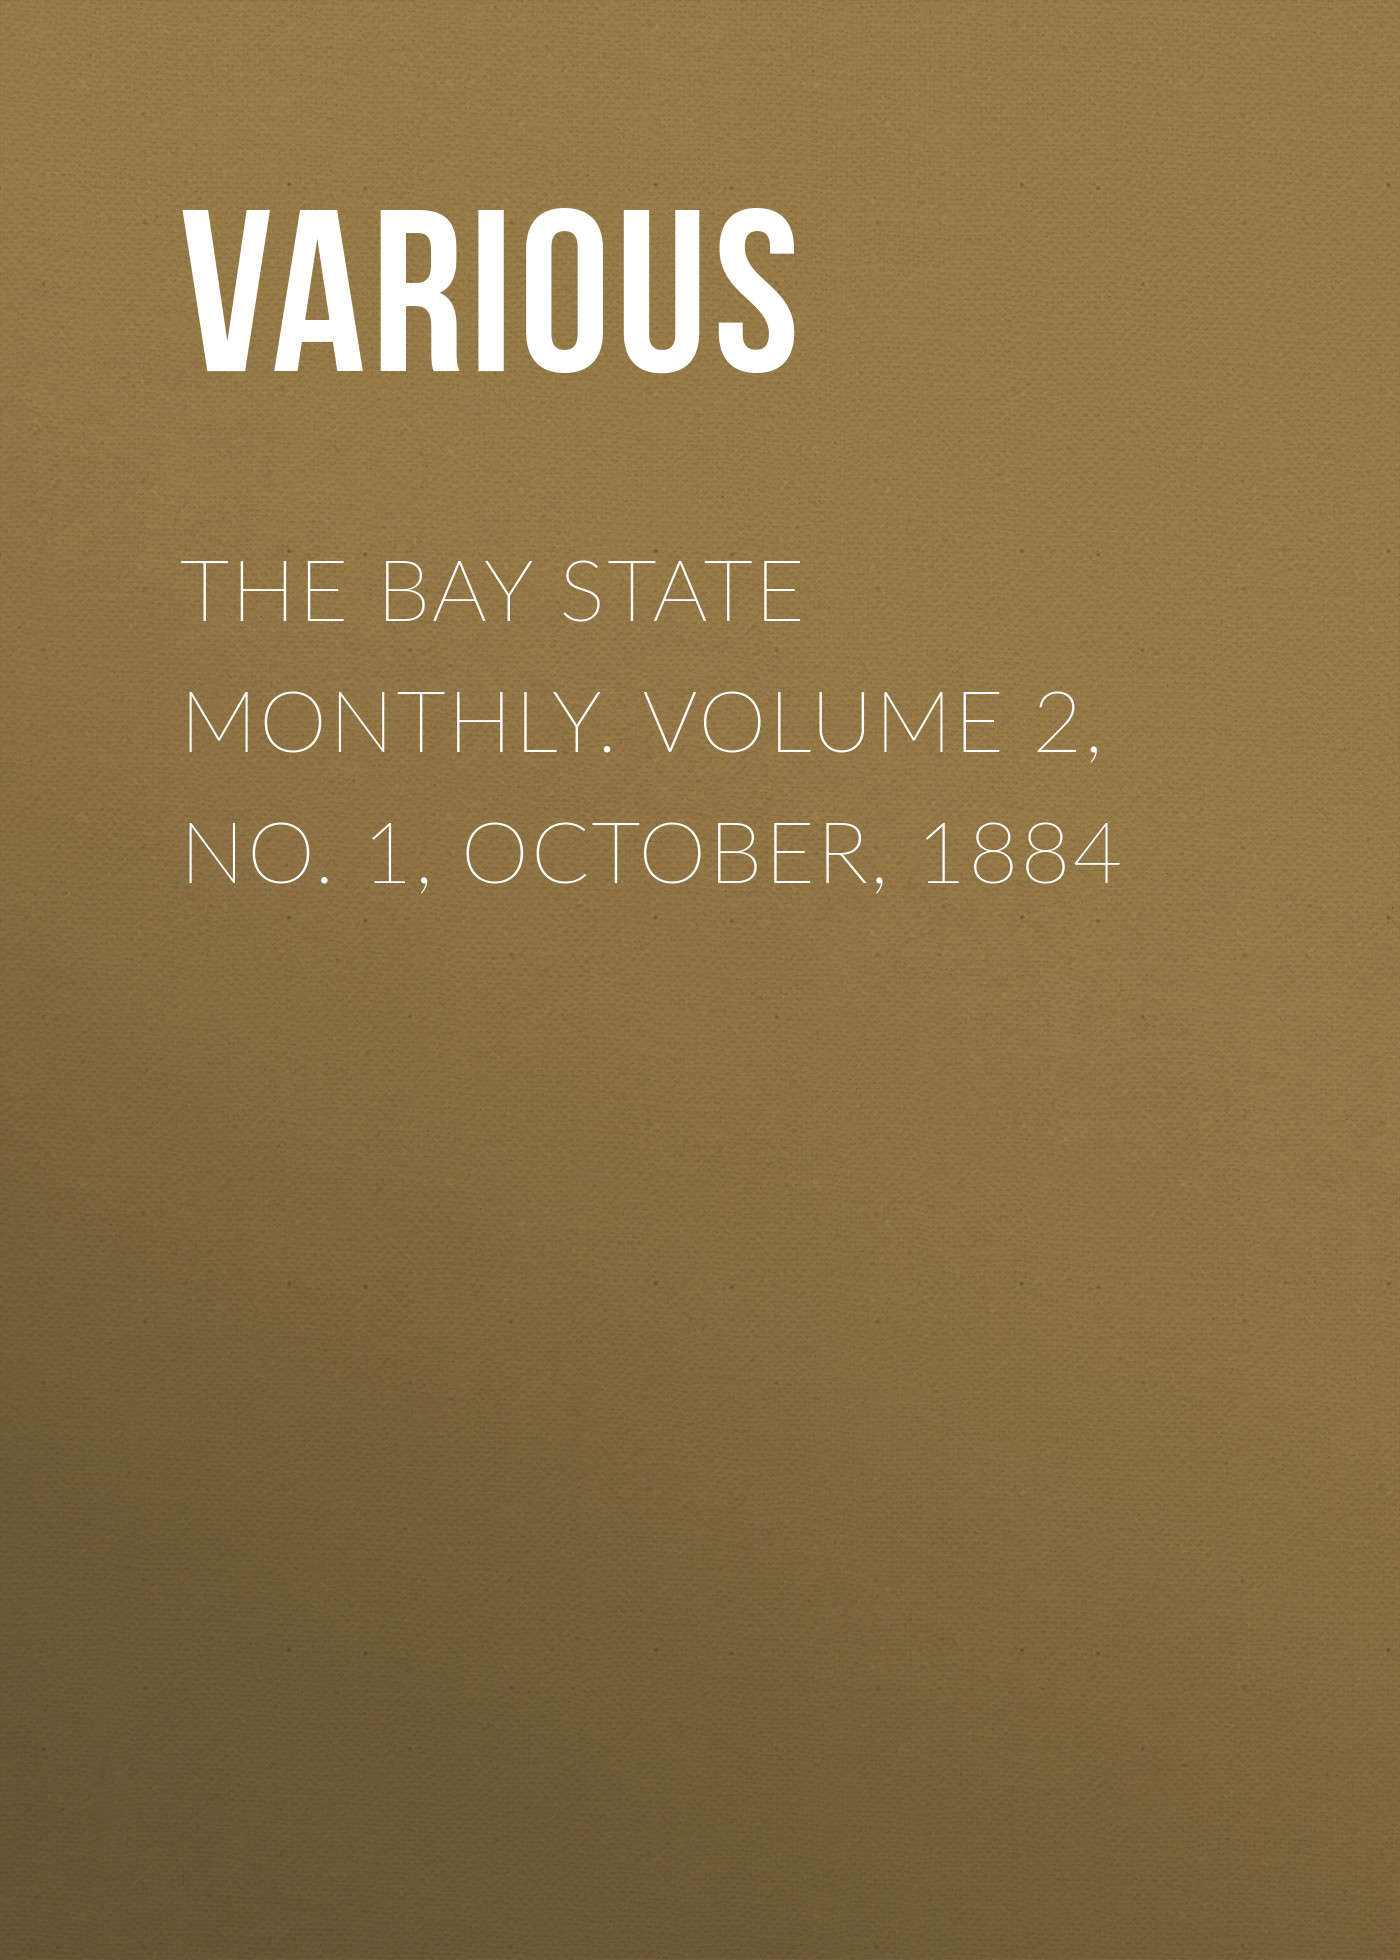 Various The Bay State Monthly. Volume 2, No. 1, October, 1884